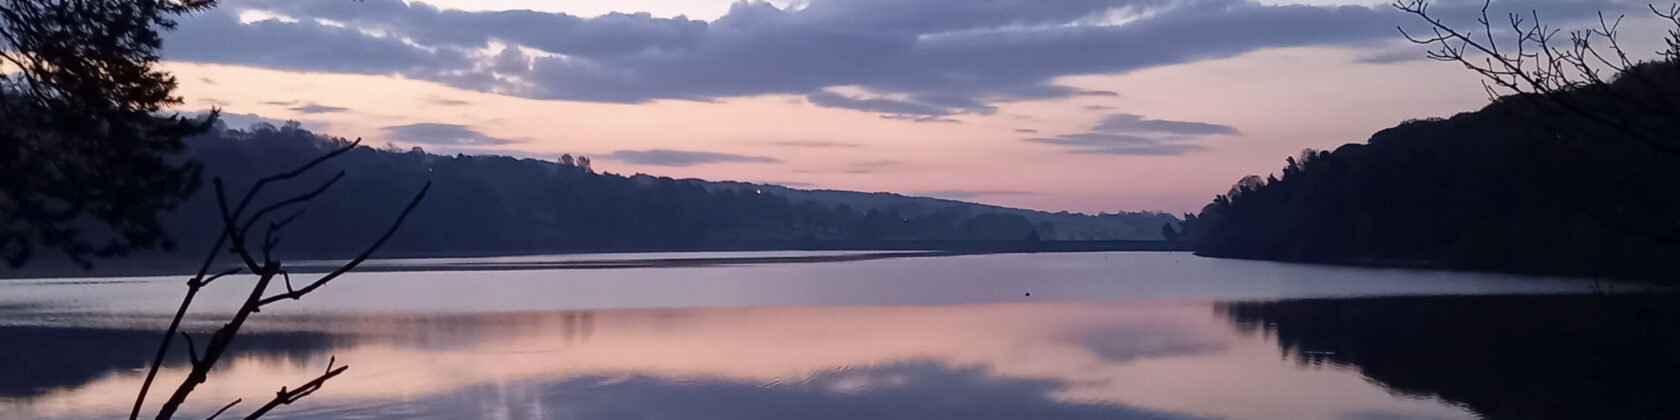 Reflection of the sky at dusk against a body of water, purple and pink hues